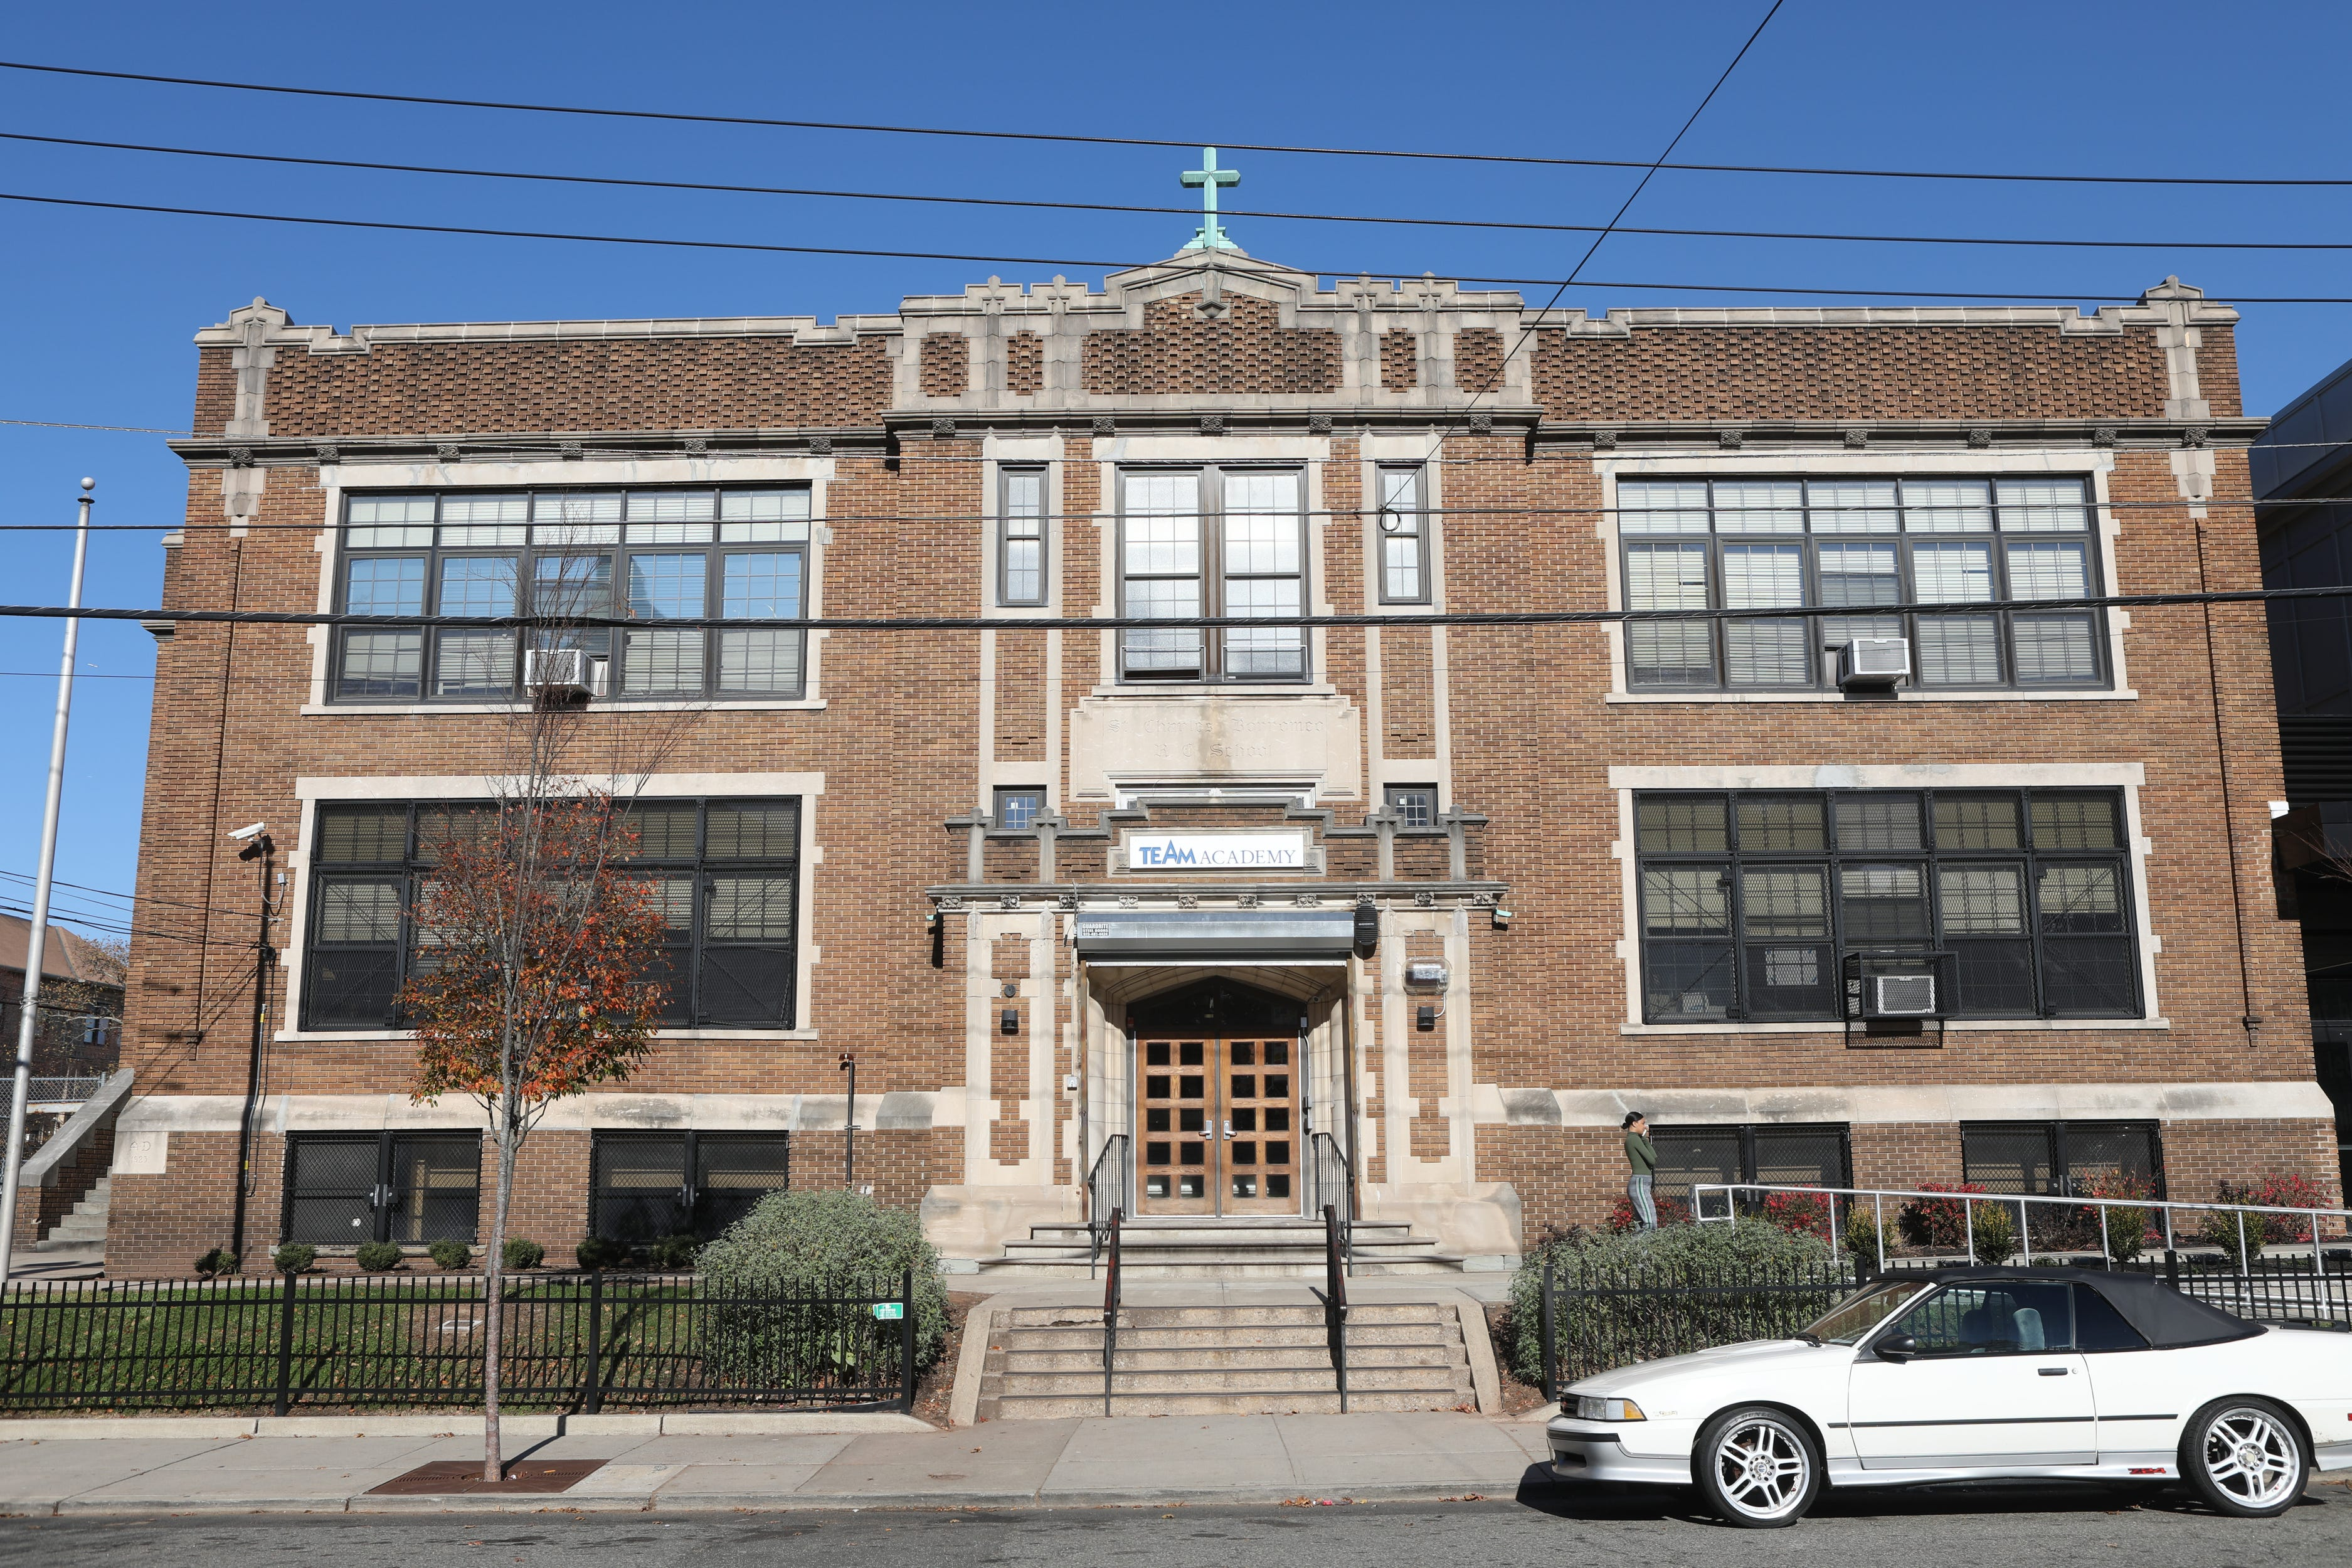 The KIPP TEAM Academy building at 85 Custer Ave. in Newark was sold between support groups.